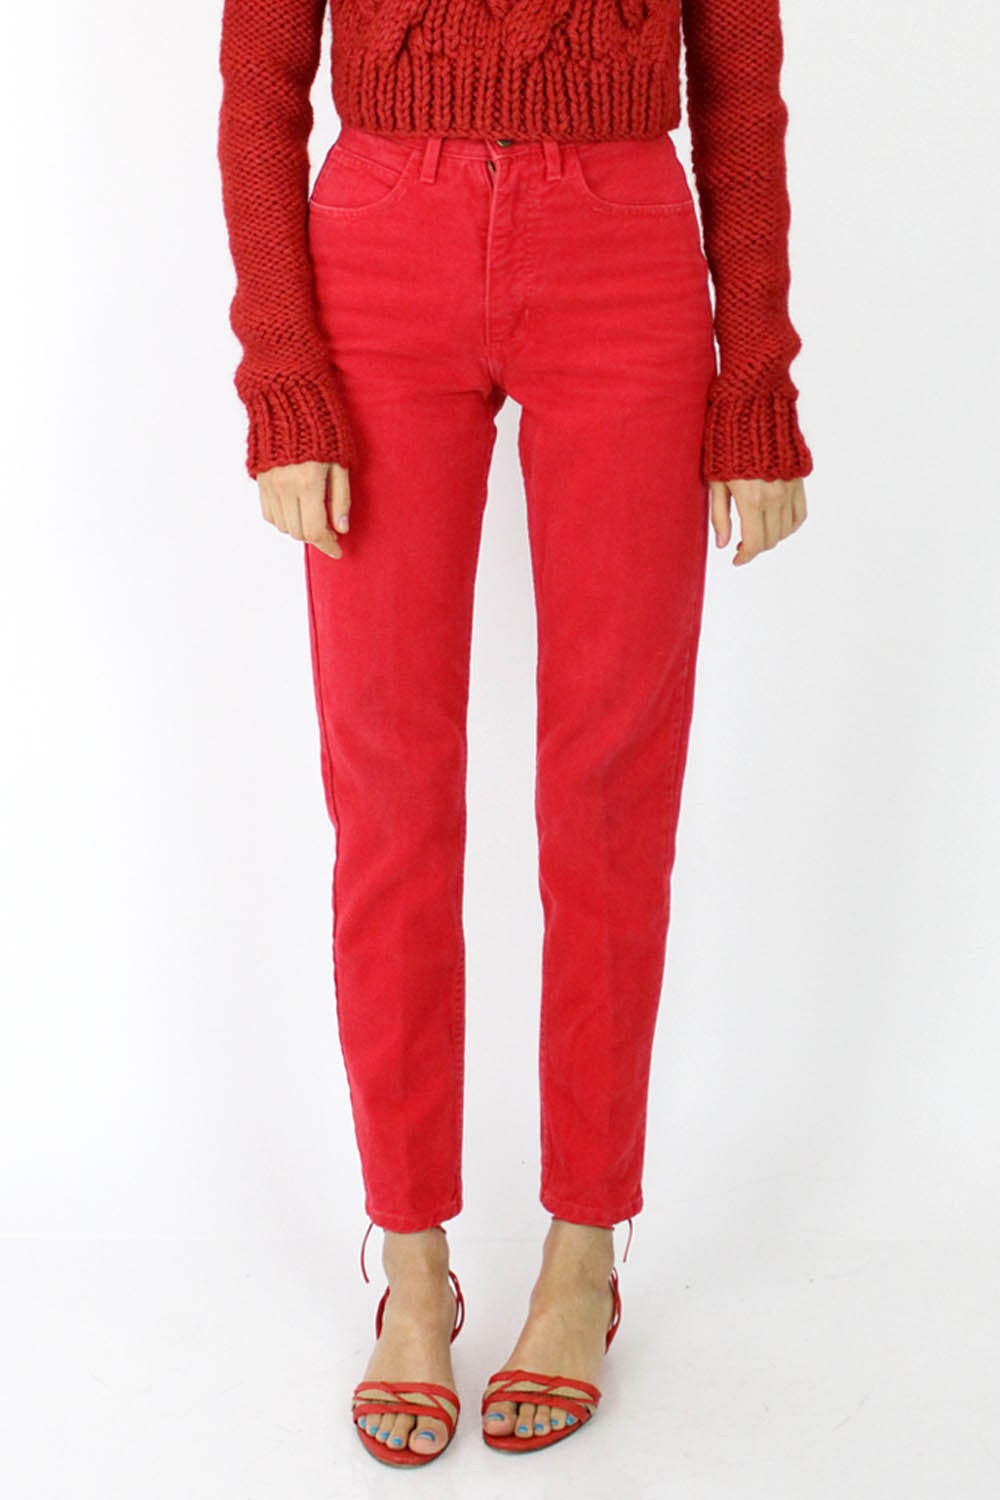 Guess? Red Jeans XS